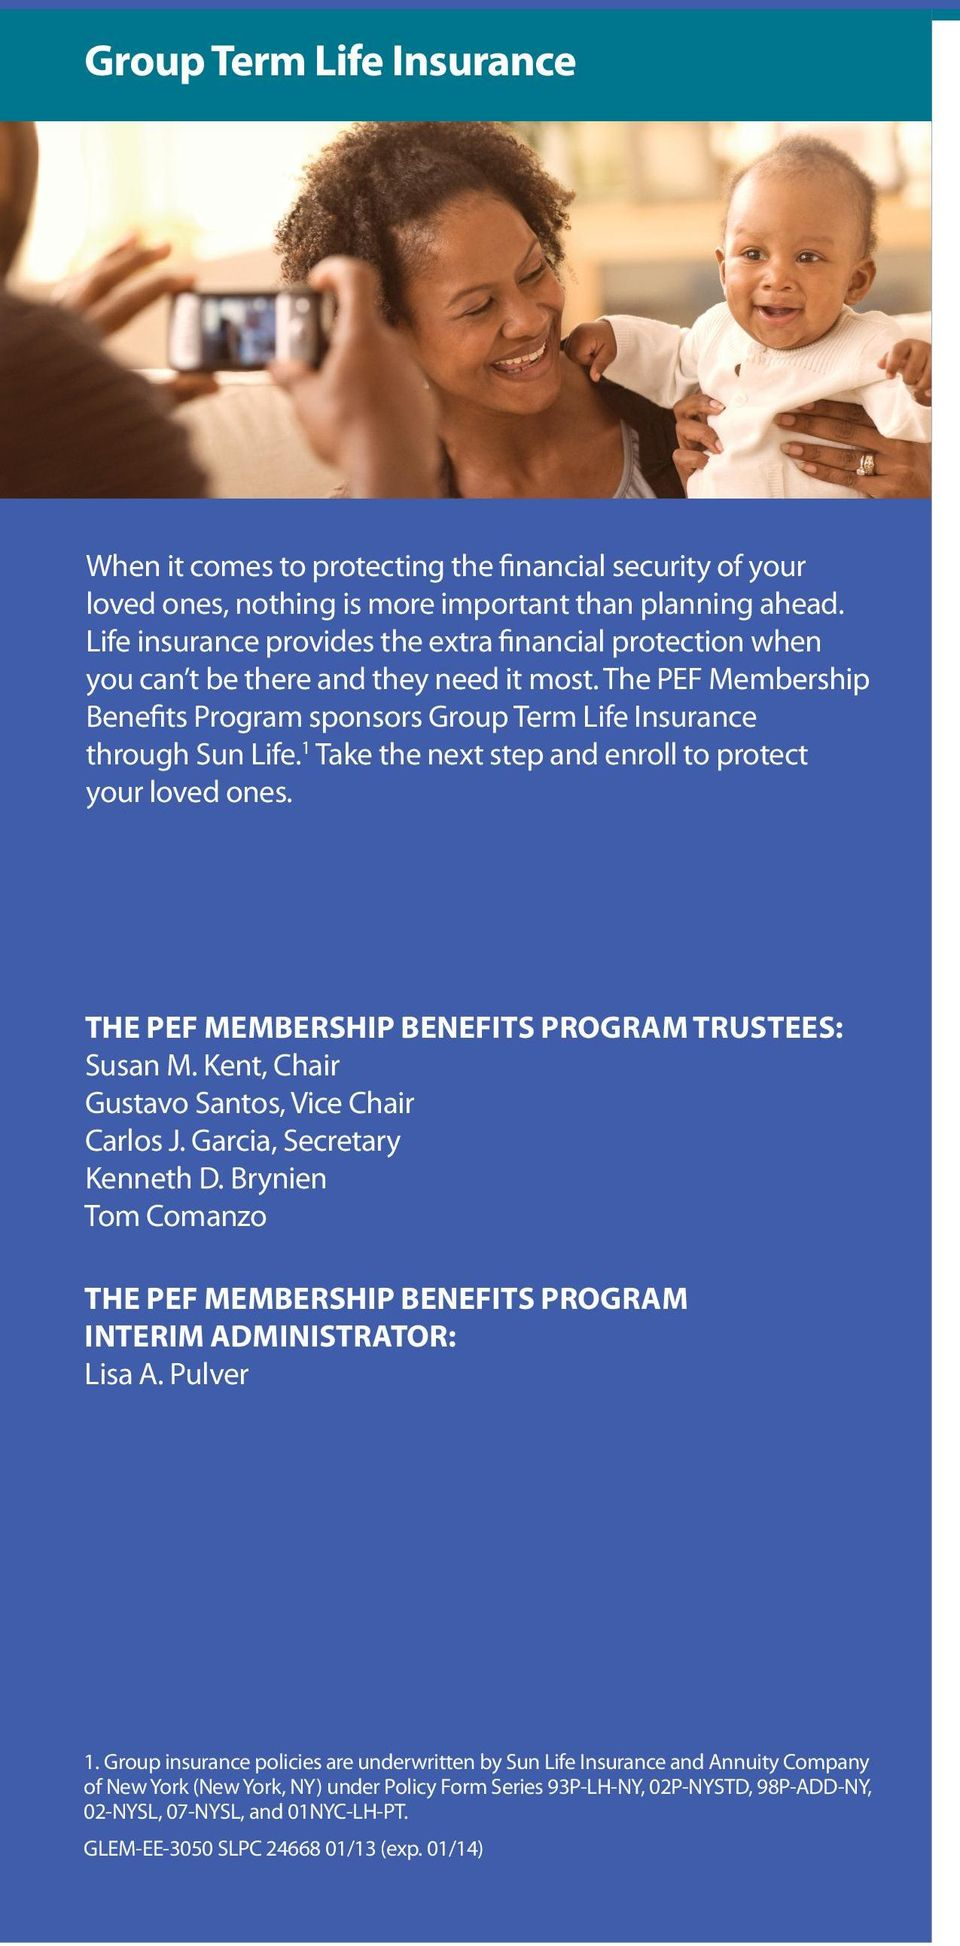 1 Take the next step and enroll to protect your loved ones. THE PEF MEMBERSHIP BENEFITS PROGRAM TRUSTEES: susan m. Kent, chair Gustavo santos, Vice chair carlos J. Garcia, secretary Kenneth D.